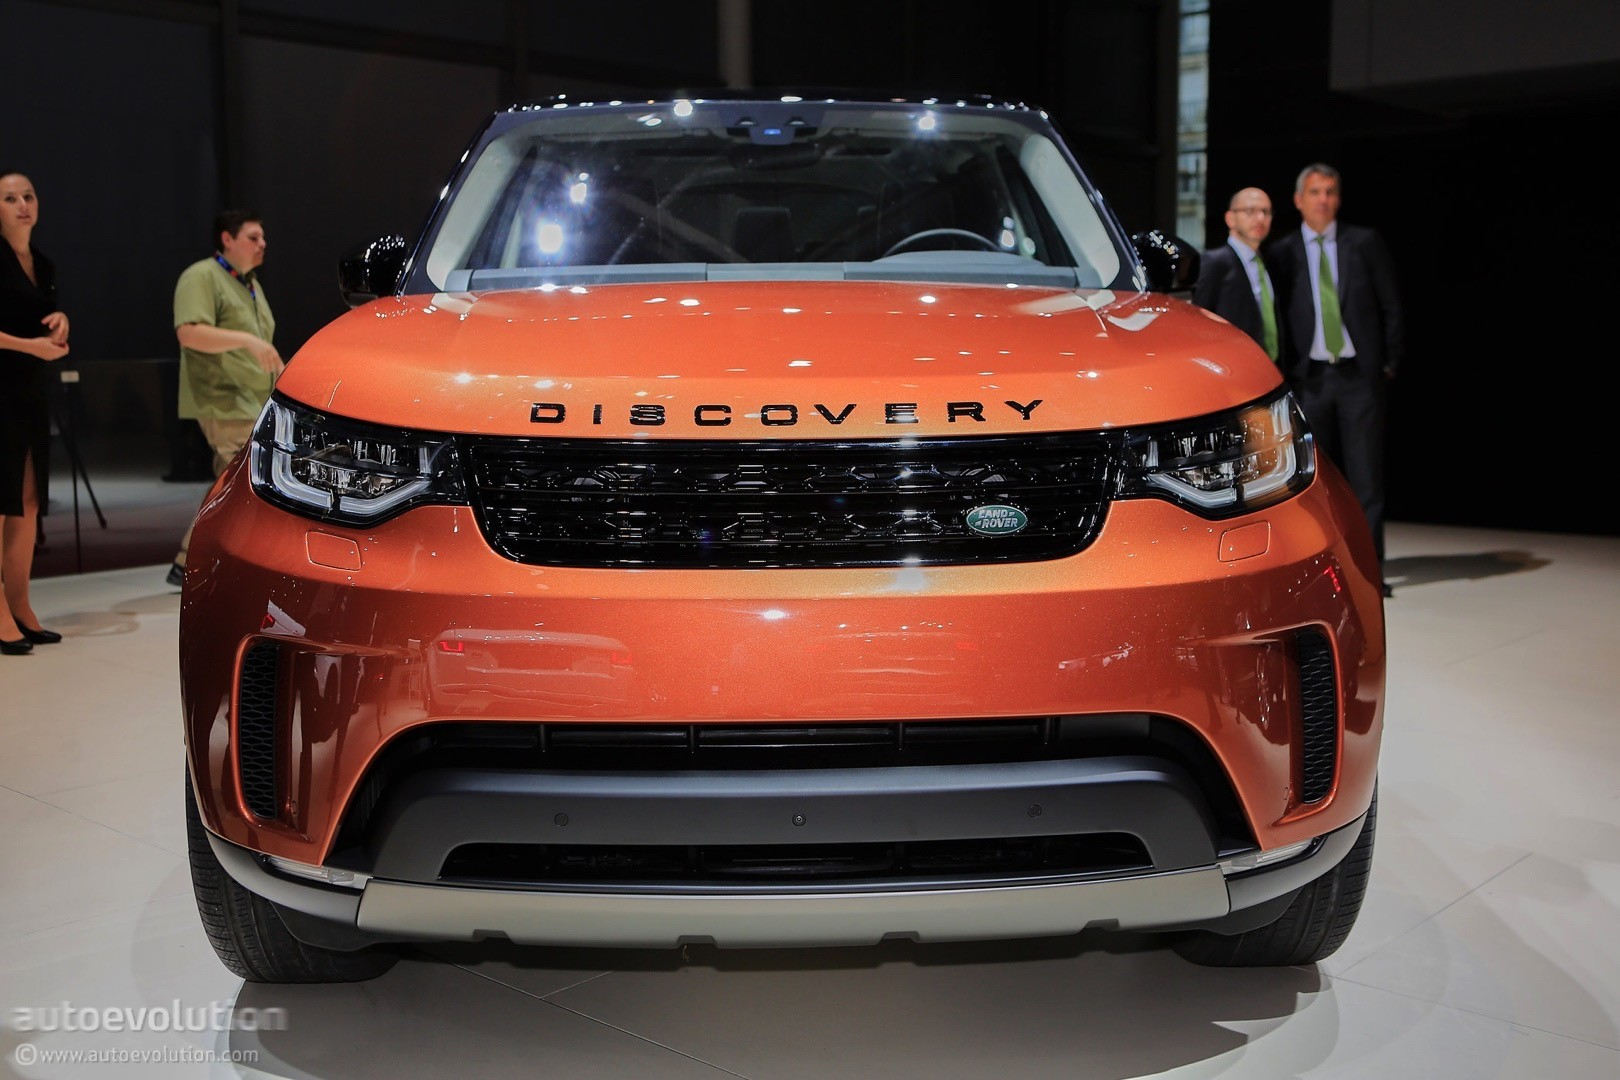 2017 land rover discovery now on sale in the u s autoevolution. Black Bedroom Furniture Sets. Home Design Ideas